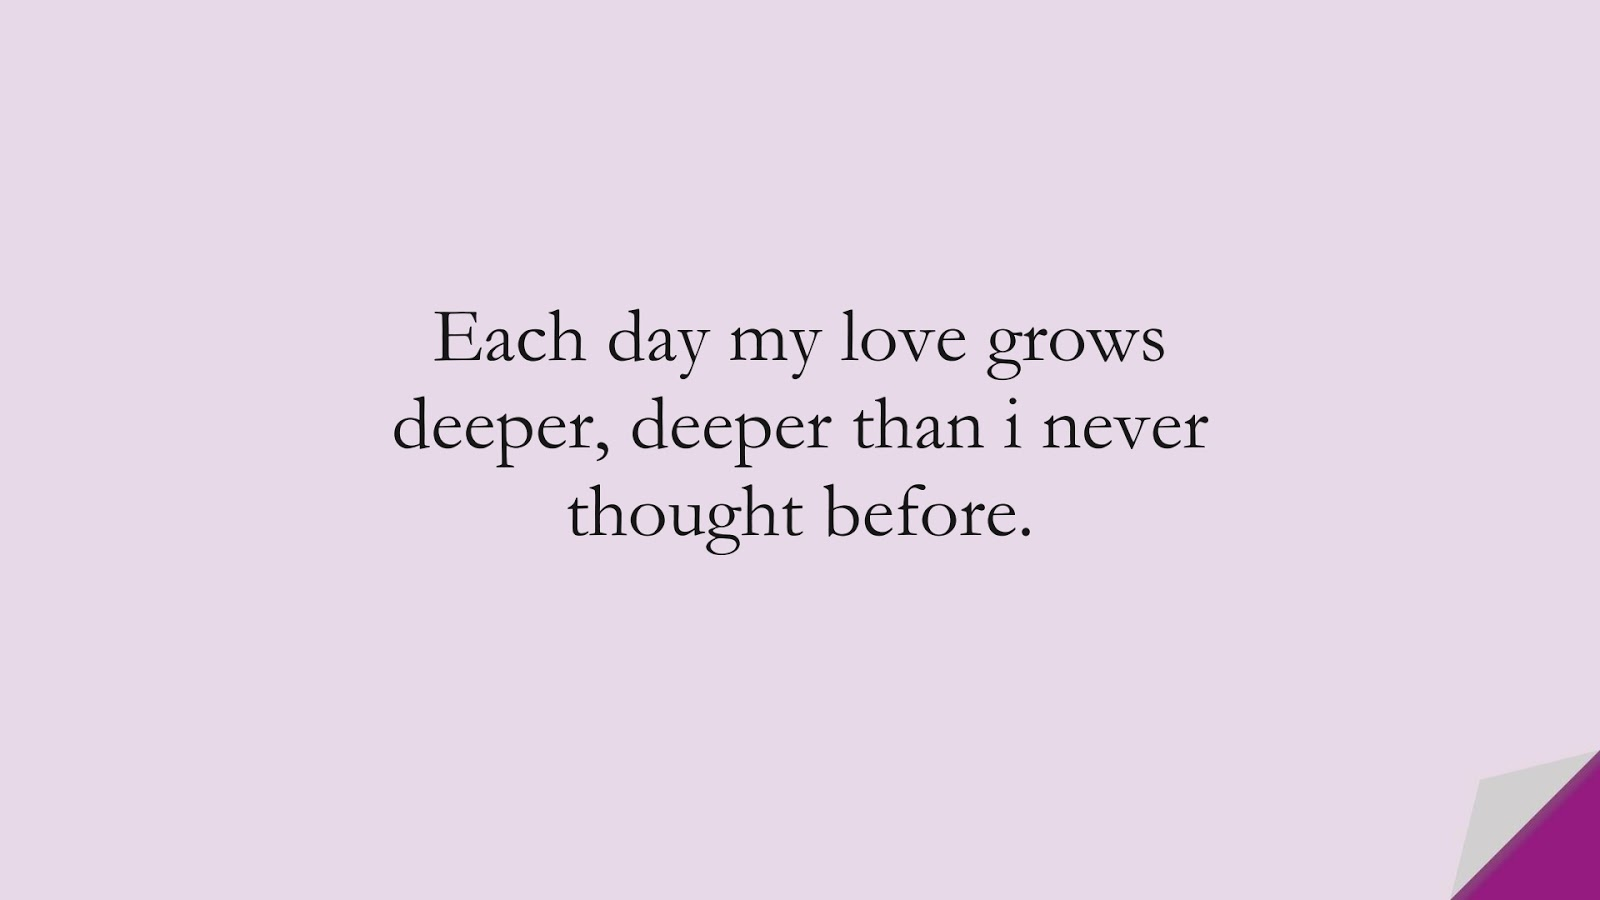 Each day my love grows deeper, deeper than i never thought before.FALSE